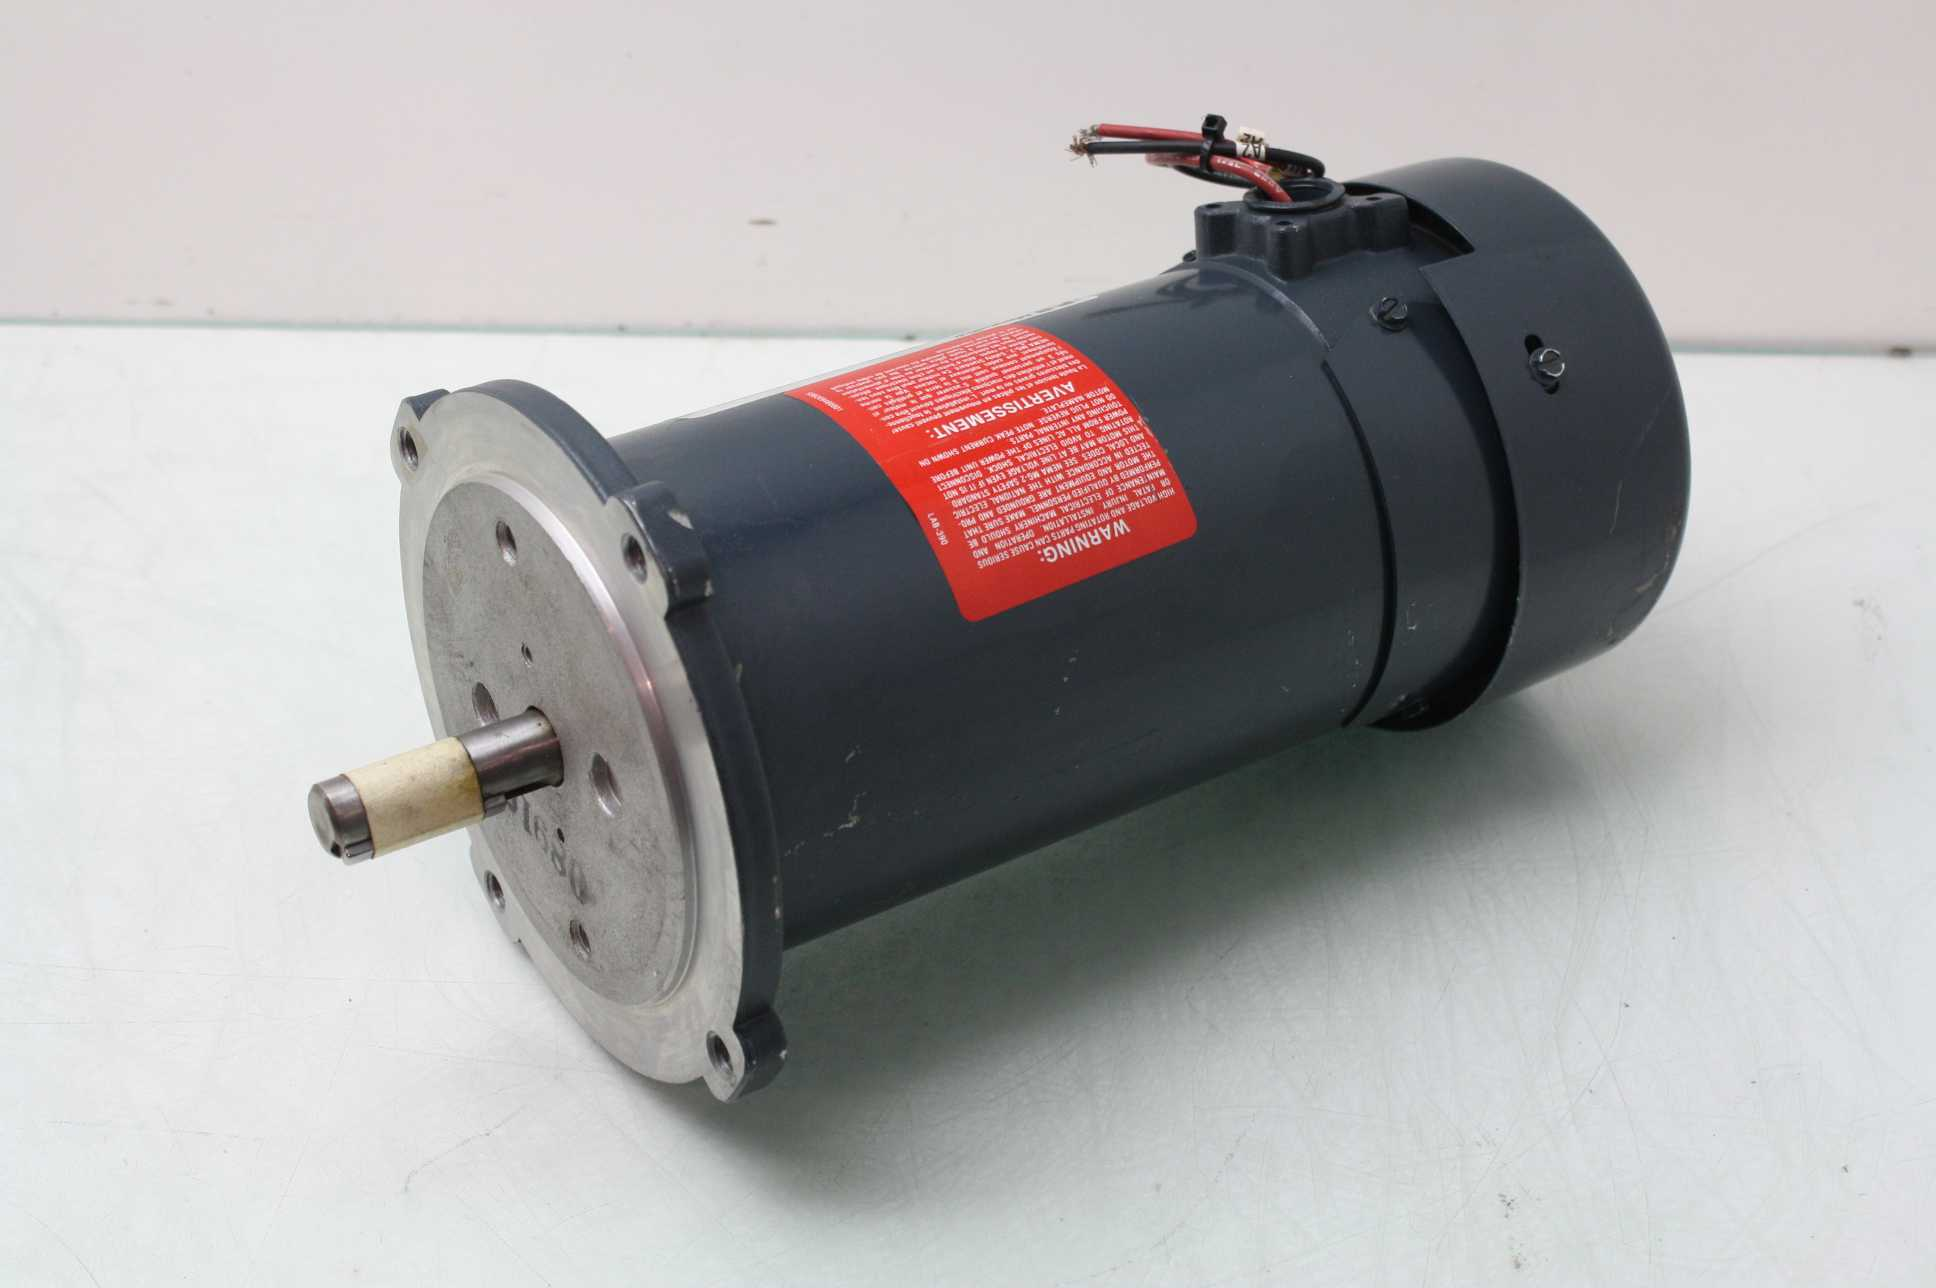 Magnetek 22200900 d052 1 2 hp dc motor nema 56c frame for 2 rpm electric motor